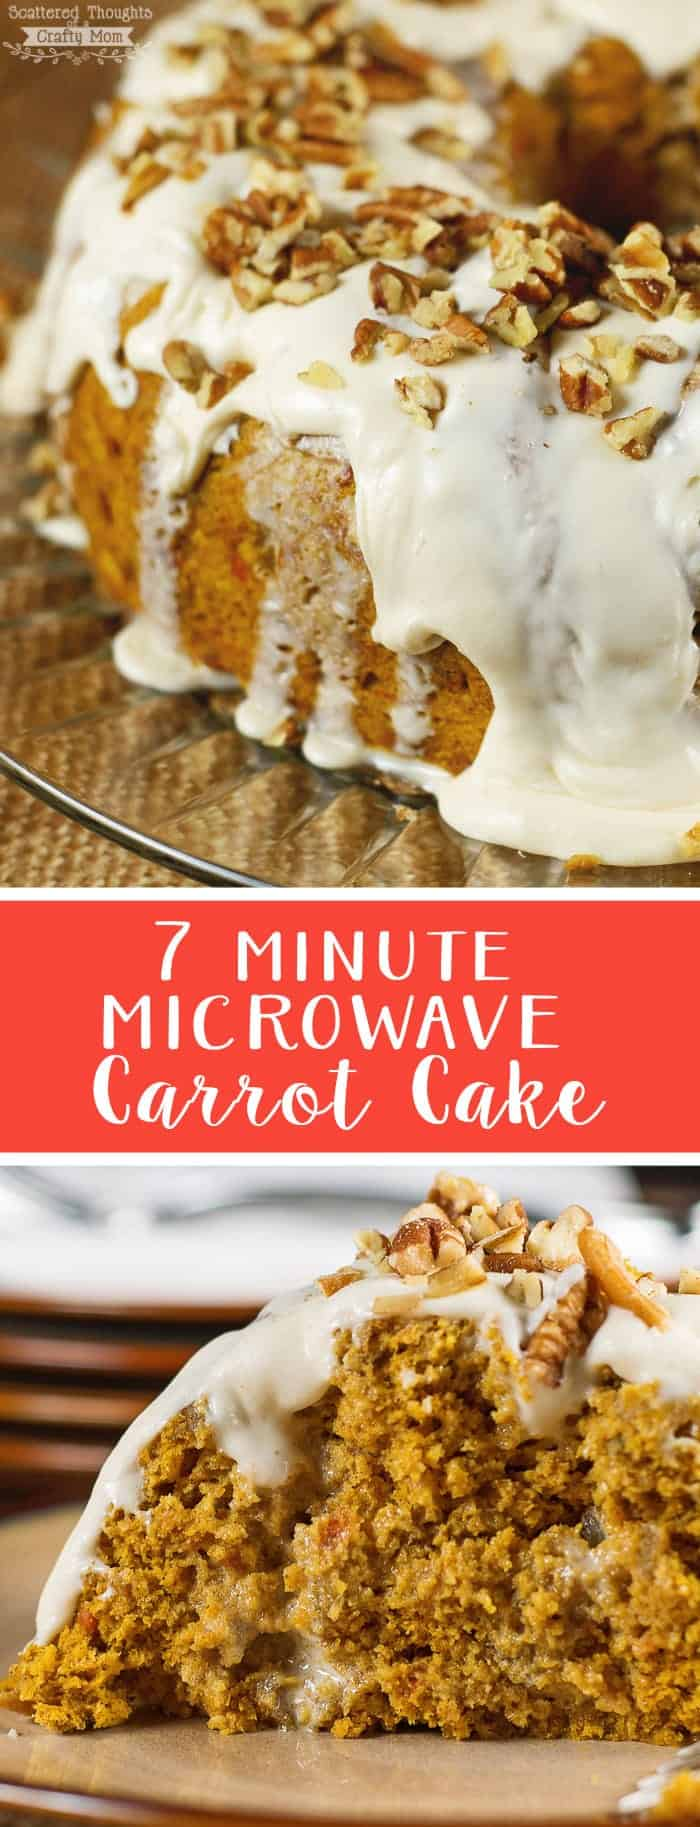 Super simple 7 Minute Microwave Carrot Cake Recipe.